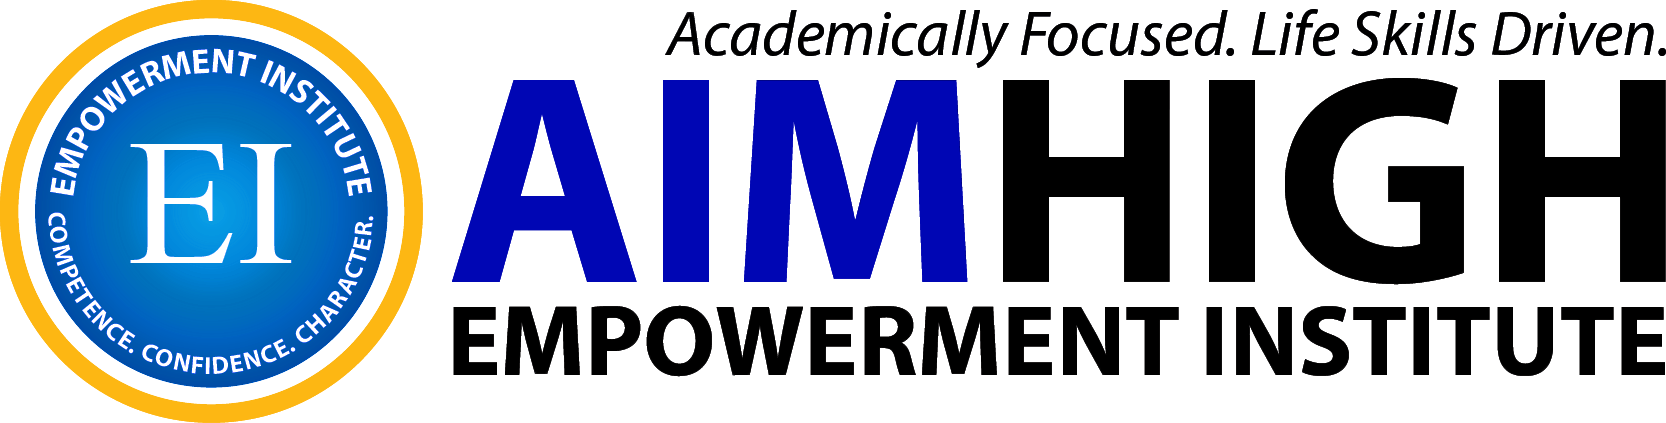 AIMHigh Empowerment Institute